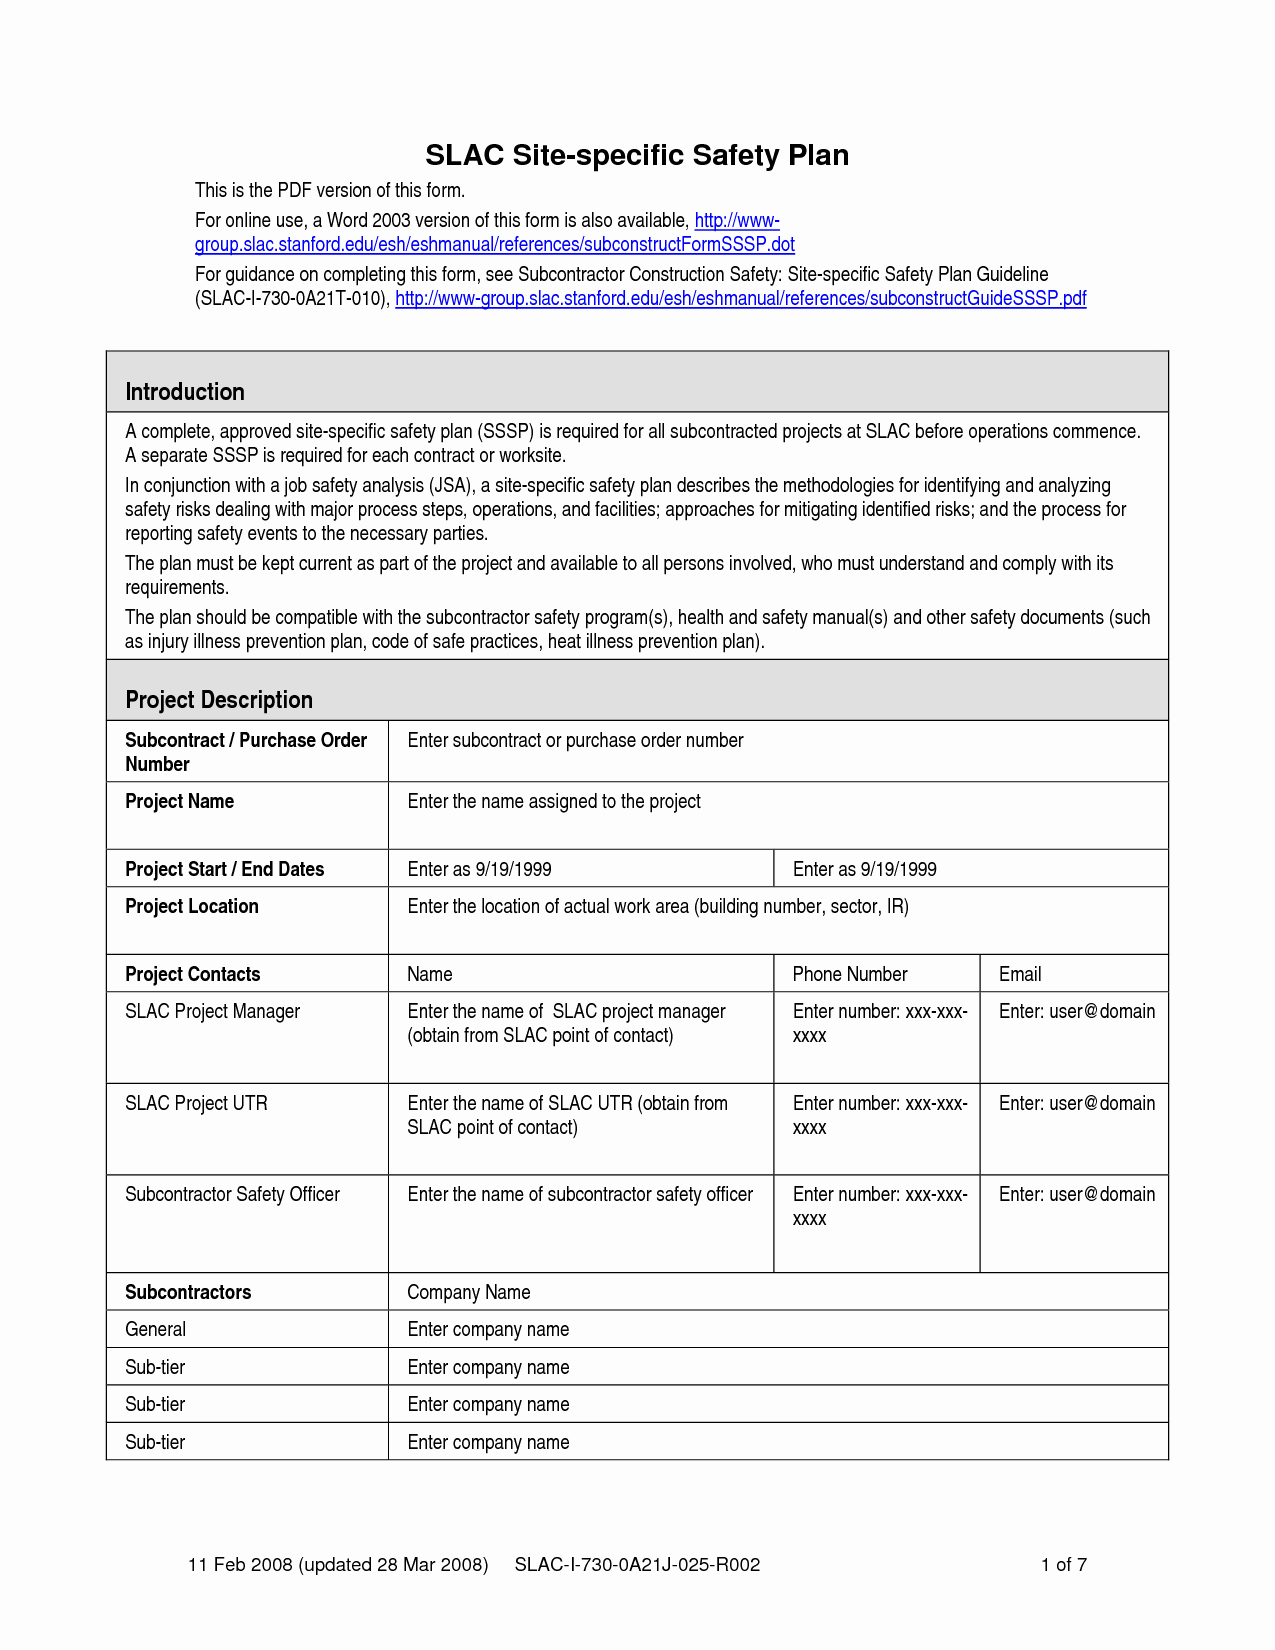 Construction Safety Plan Template Unique Safety Plan Template